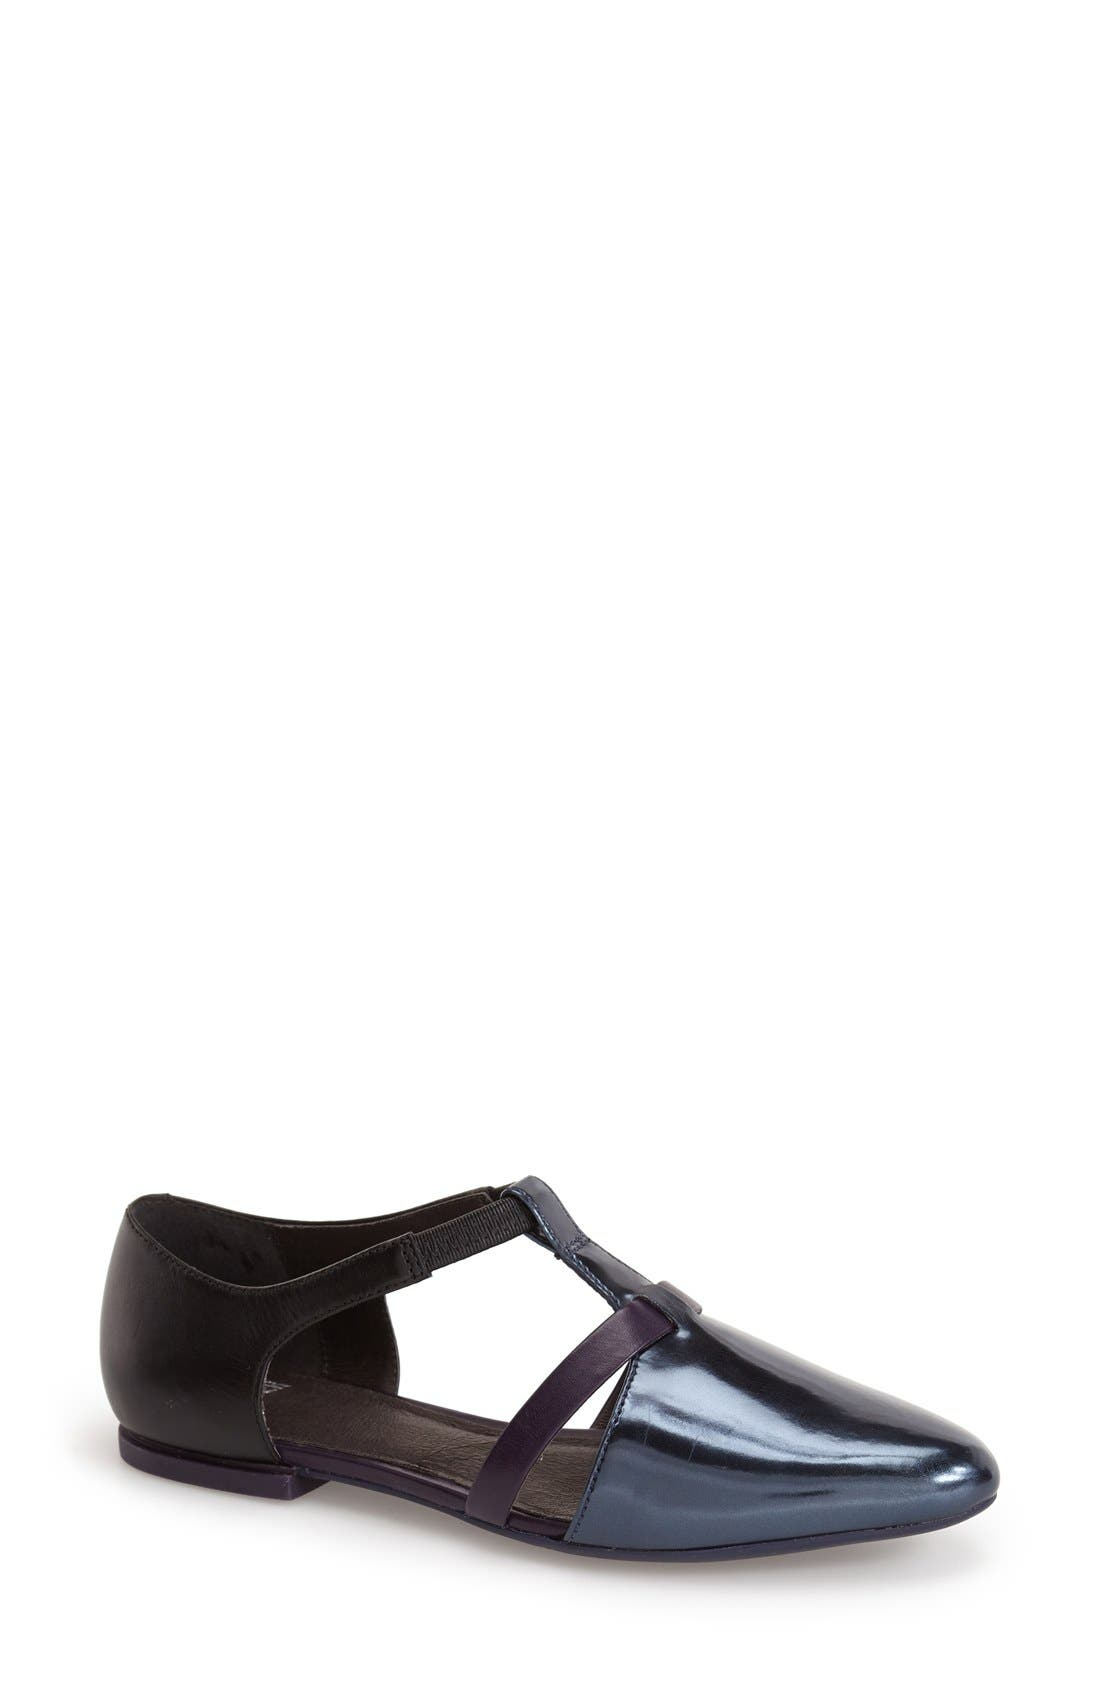 'Isadora' T-Strap Leather Flat, Main, color, 001